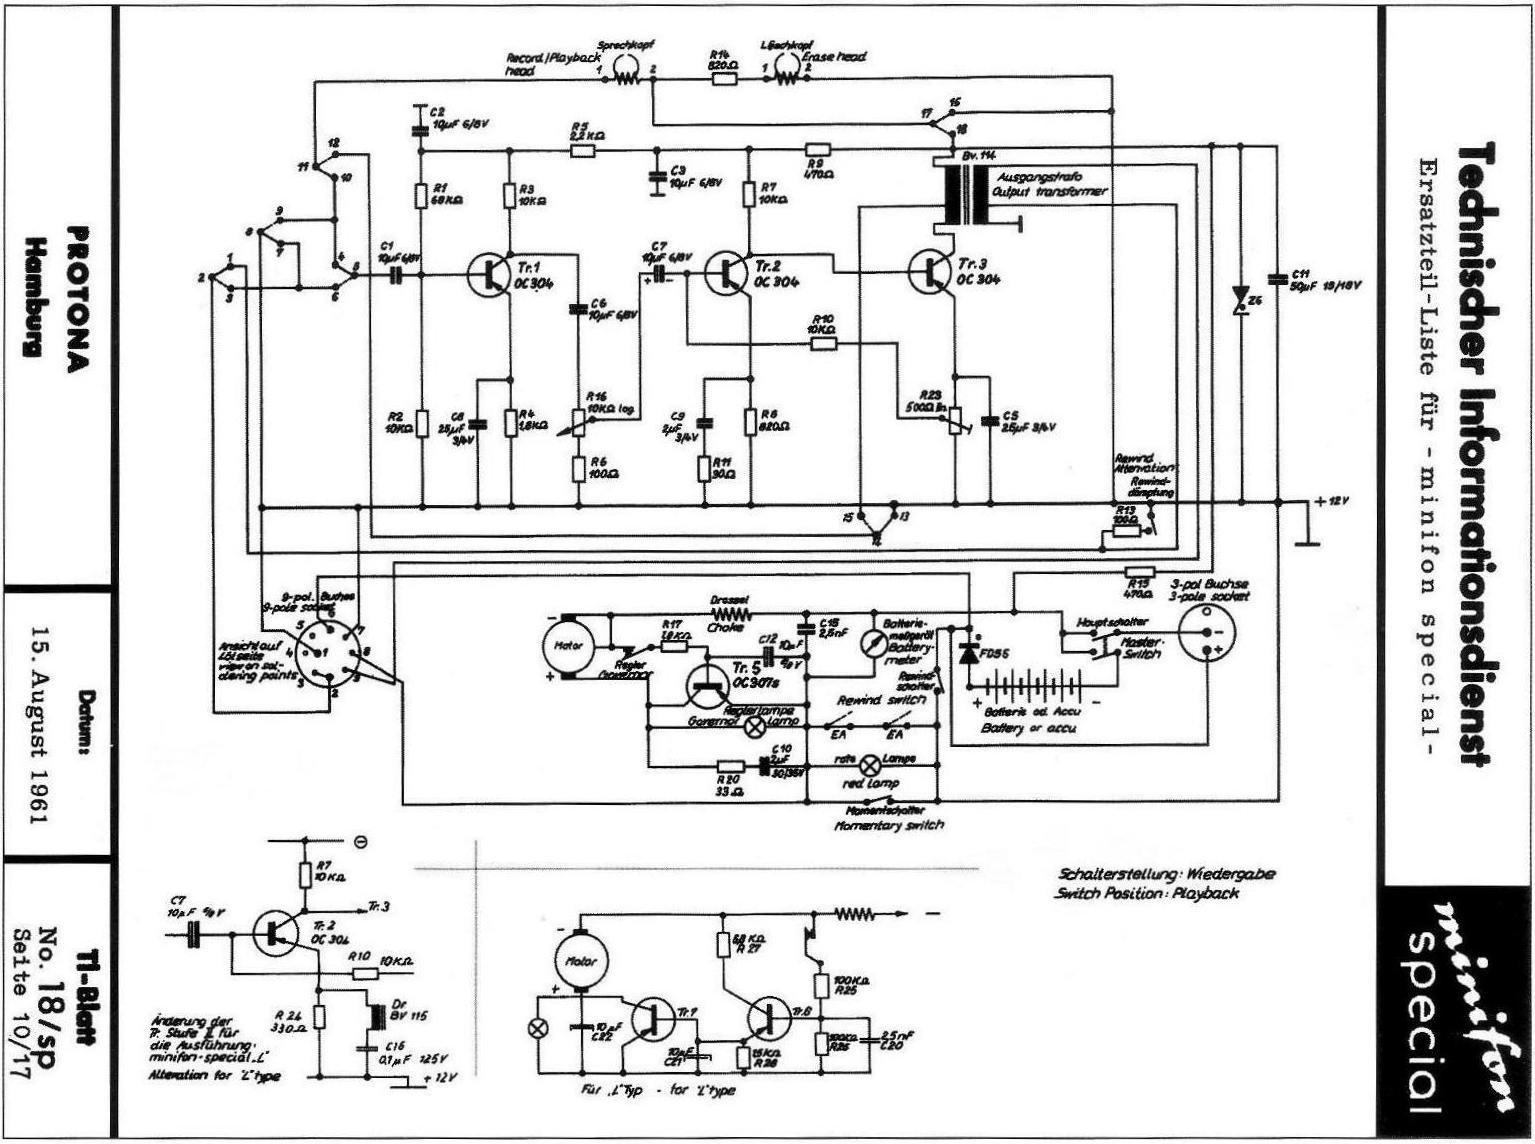 Vintage Technics Minifon Protona Special Simple Speed Diagram L200 Dc Motor Control Circuit The Amplifier Is Built On Four Transistors One Used In Stabilizer And Another As A Protection Diode Power Supply